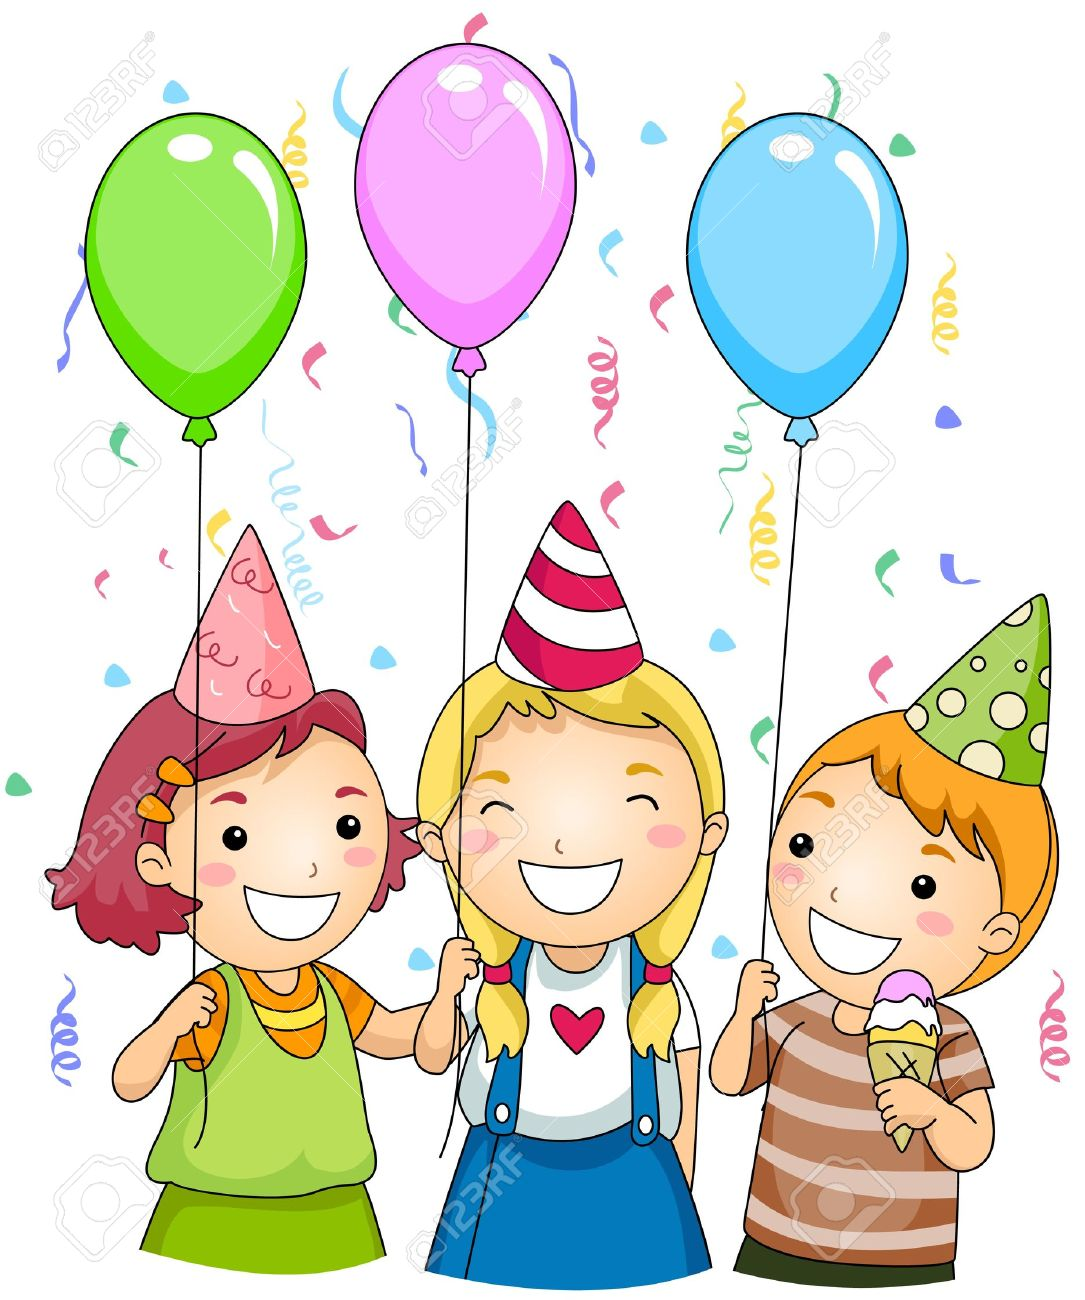 Illustration of Kids Holding Colorful Balloons at a Party Stock Photo - 8550080